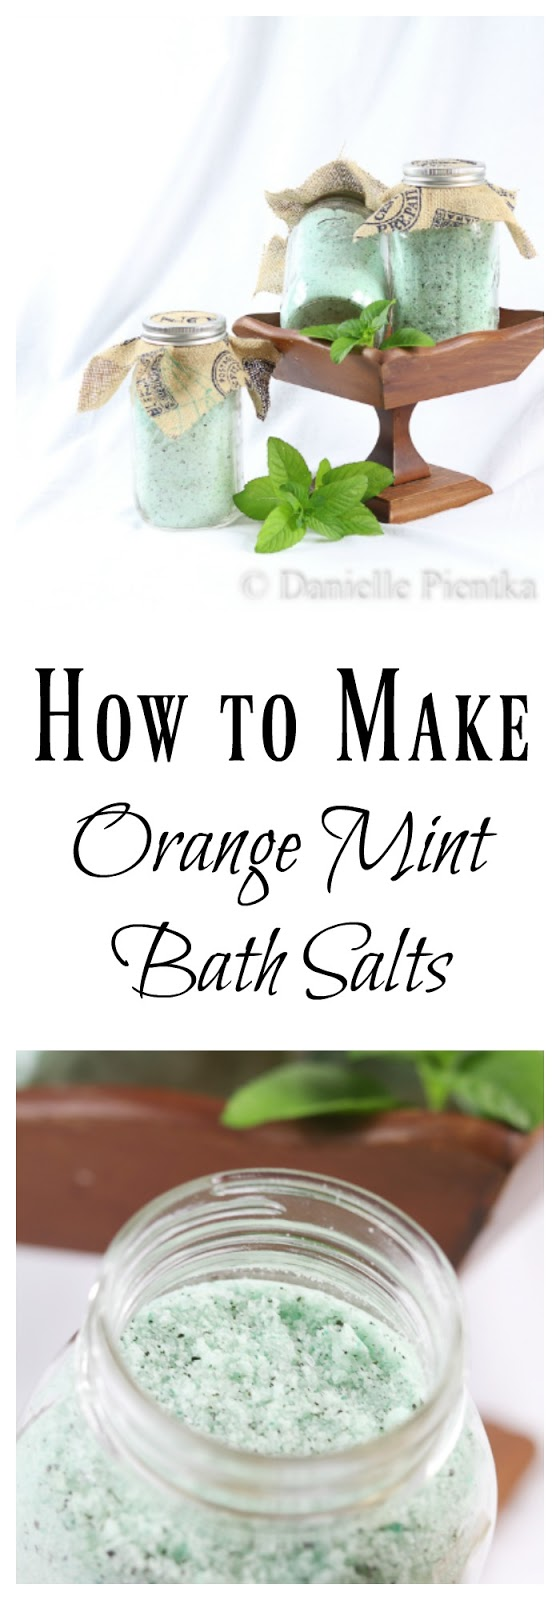 DIY Orange Mint Bath Salts: These make great Christmas gifts that kids can help with.